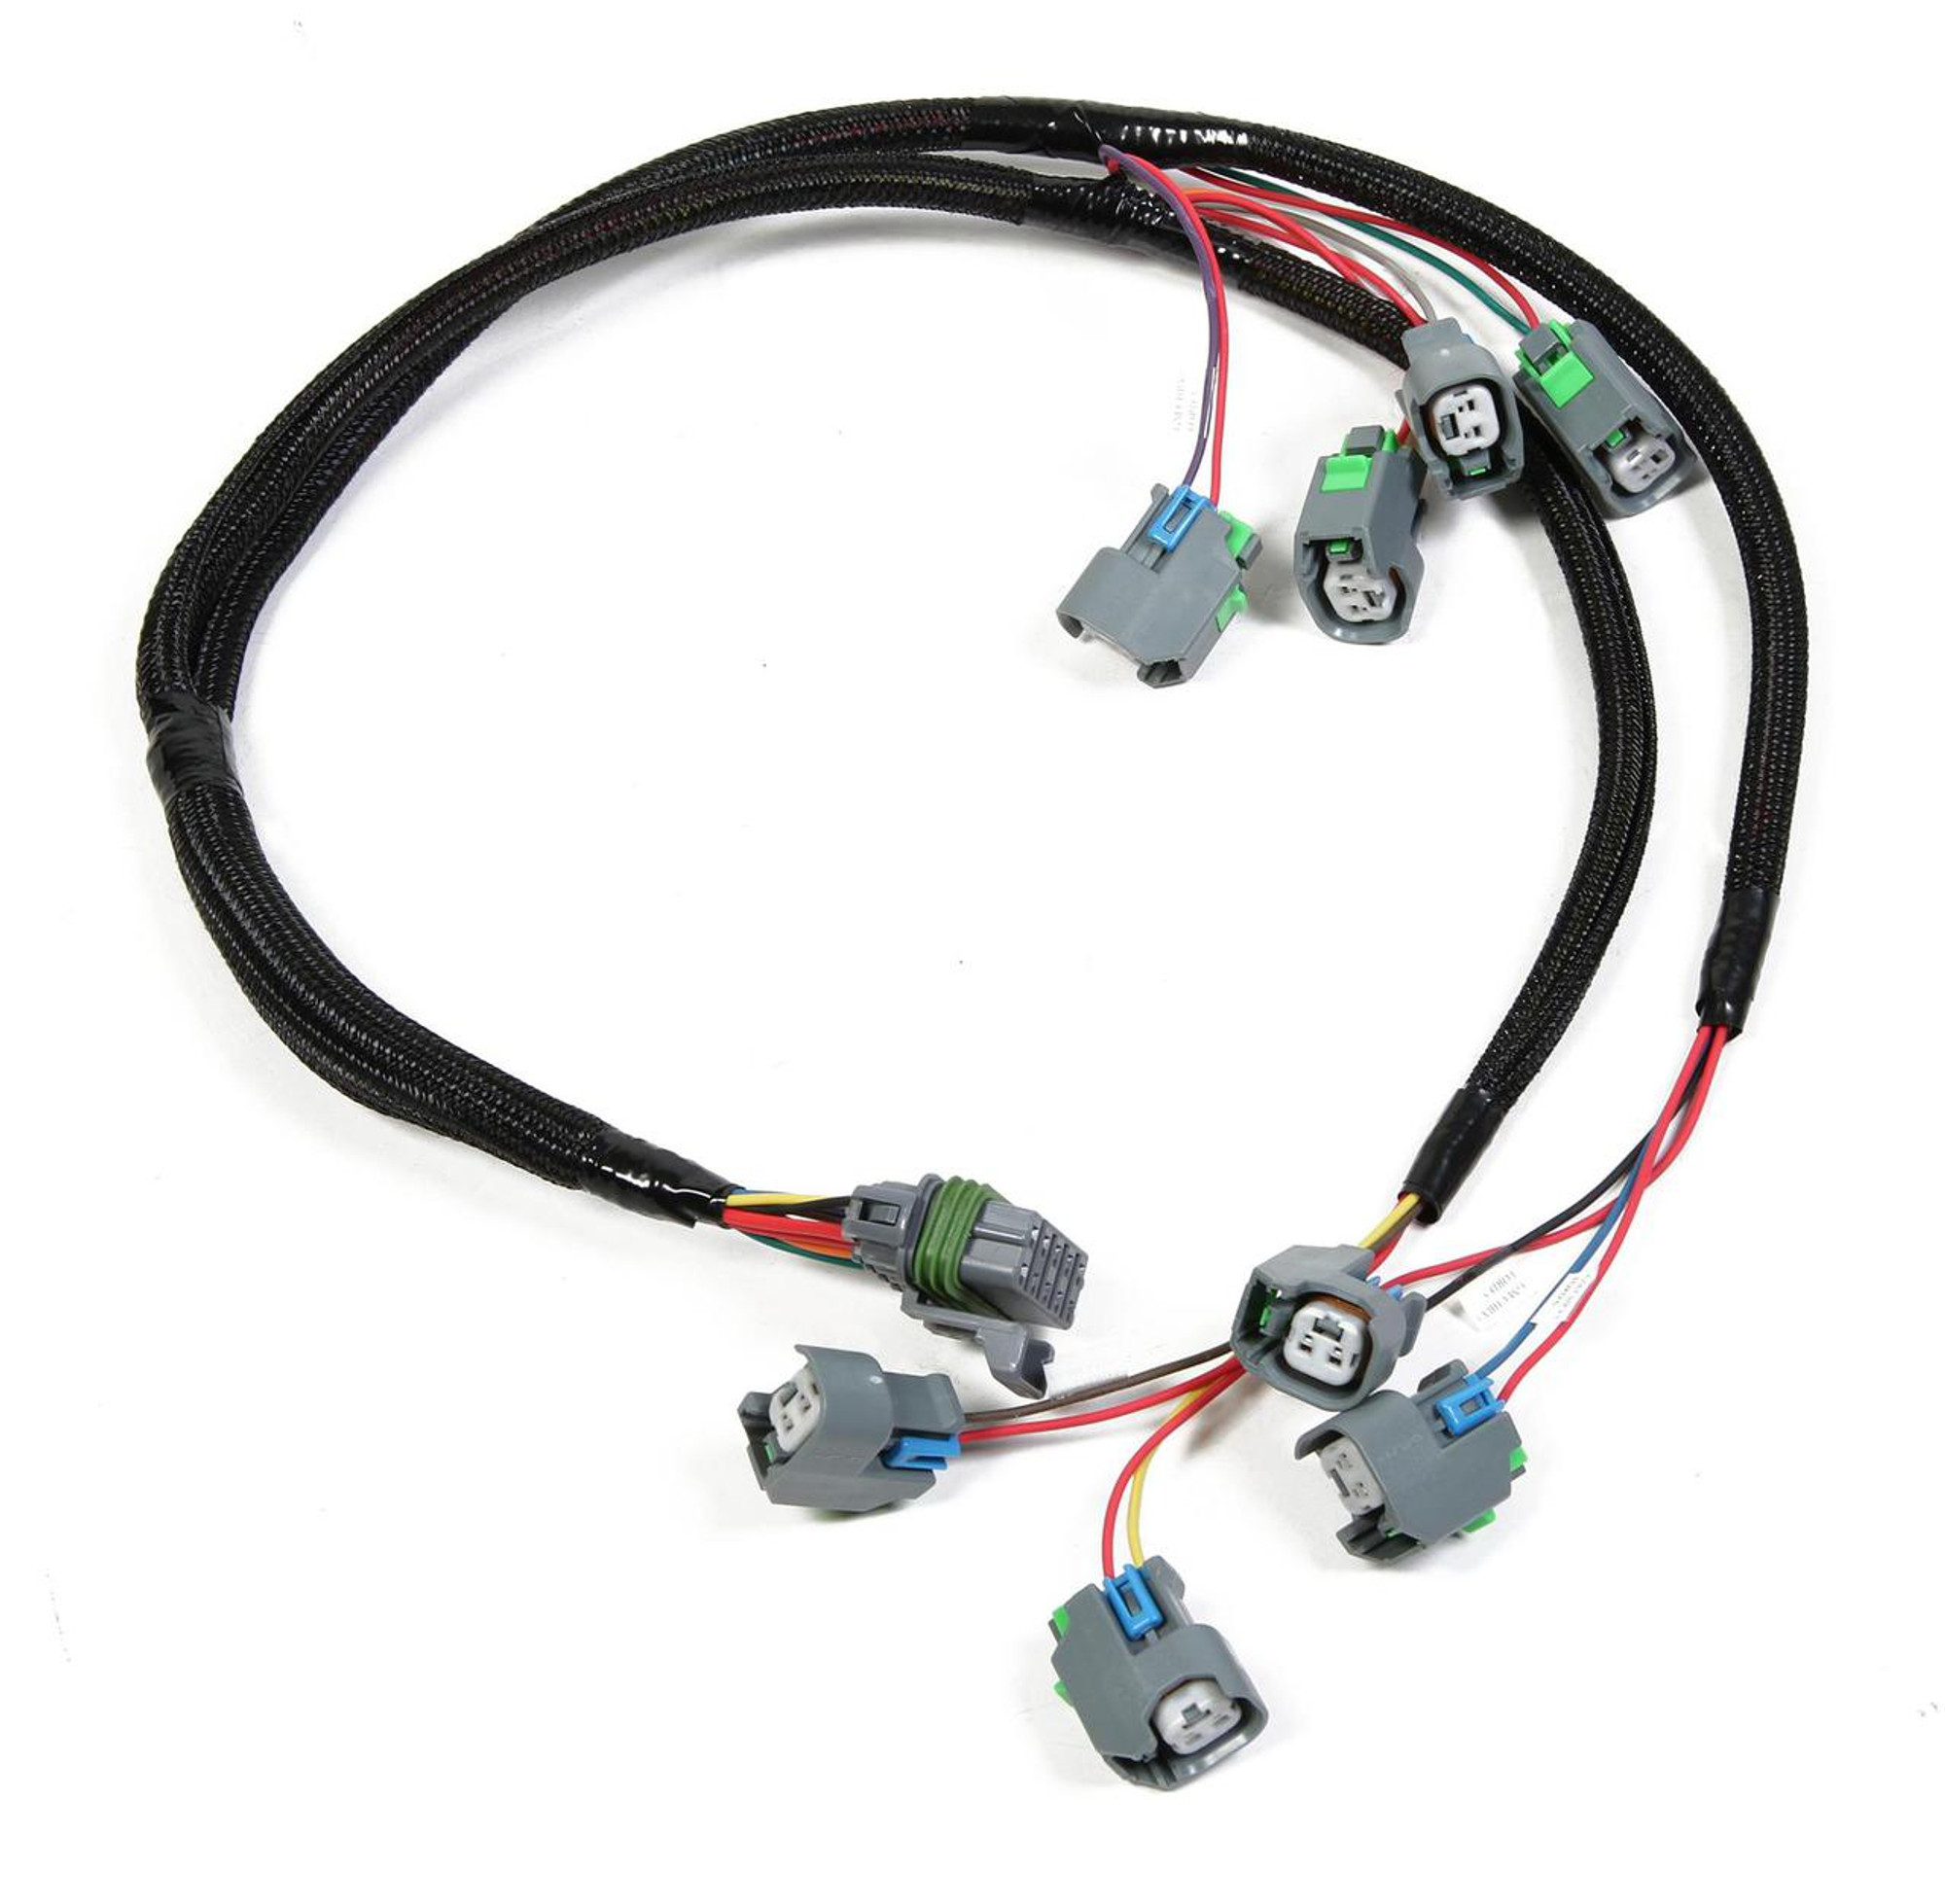 medium resolution of holley fuel injection wiring harness for lsx engines part hly 558 fuel injector wiring harness ford fuel injector wiring harness